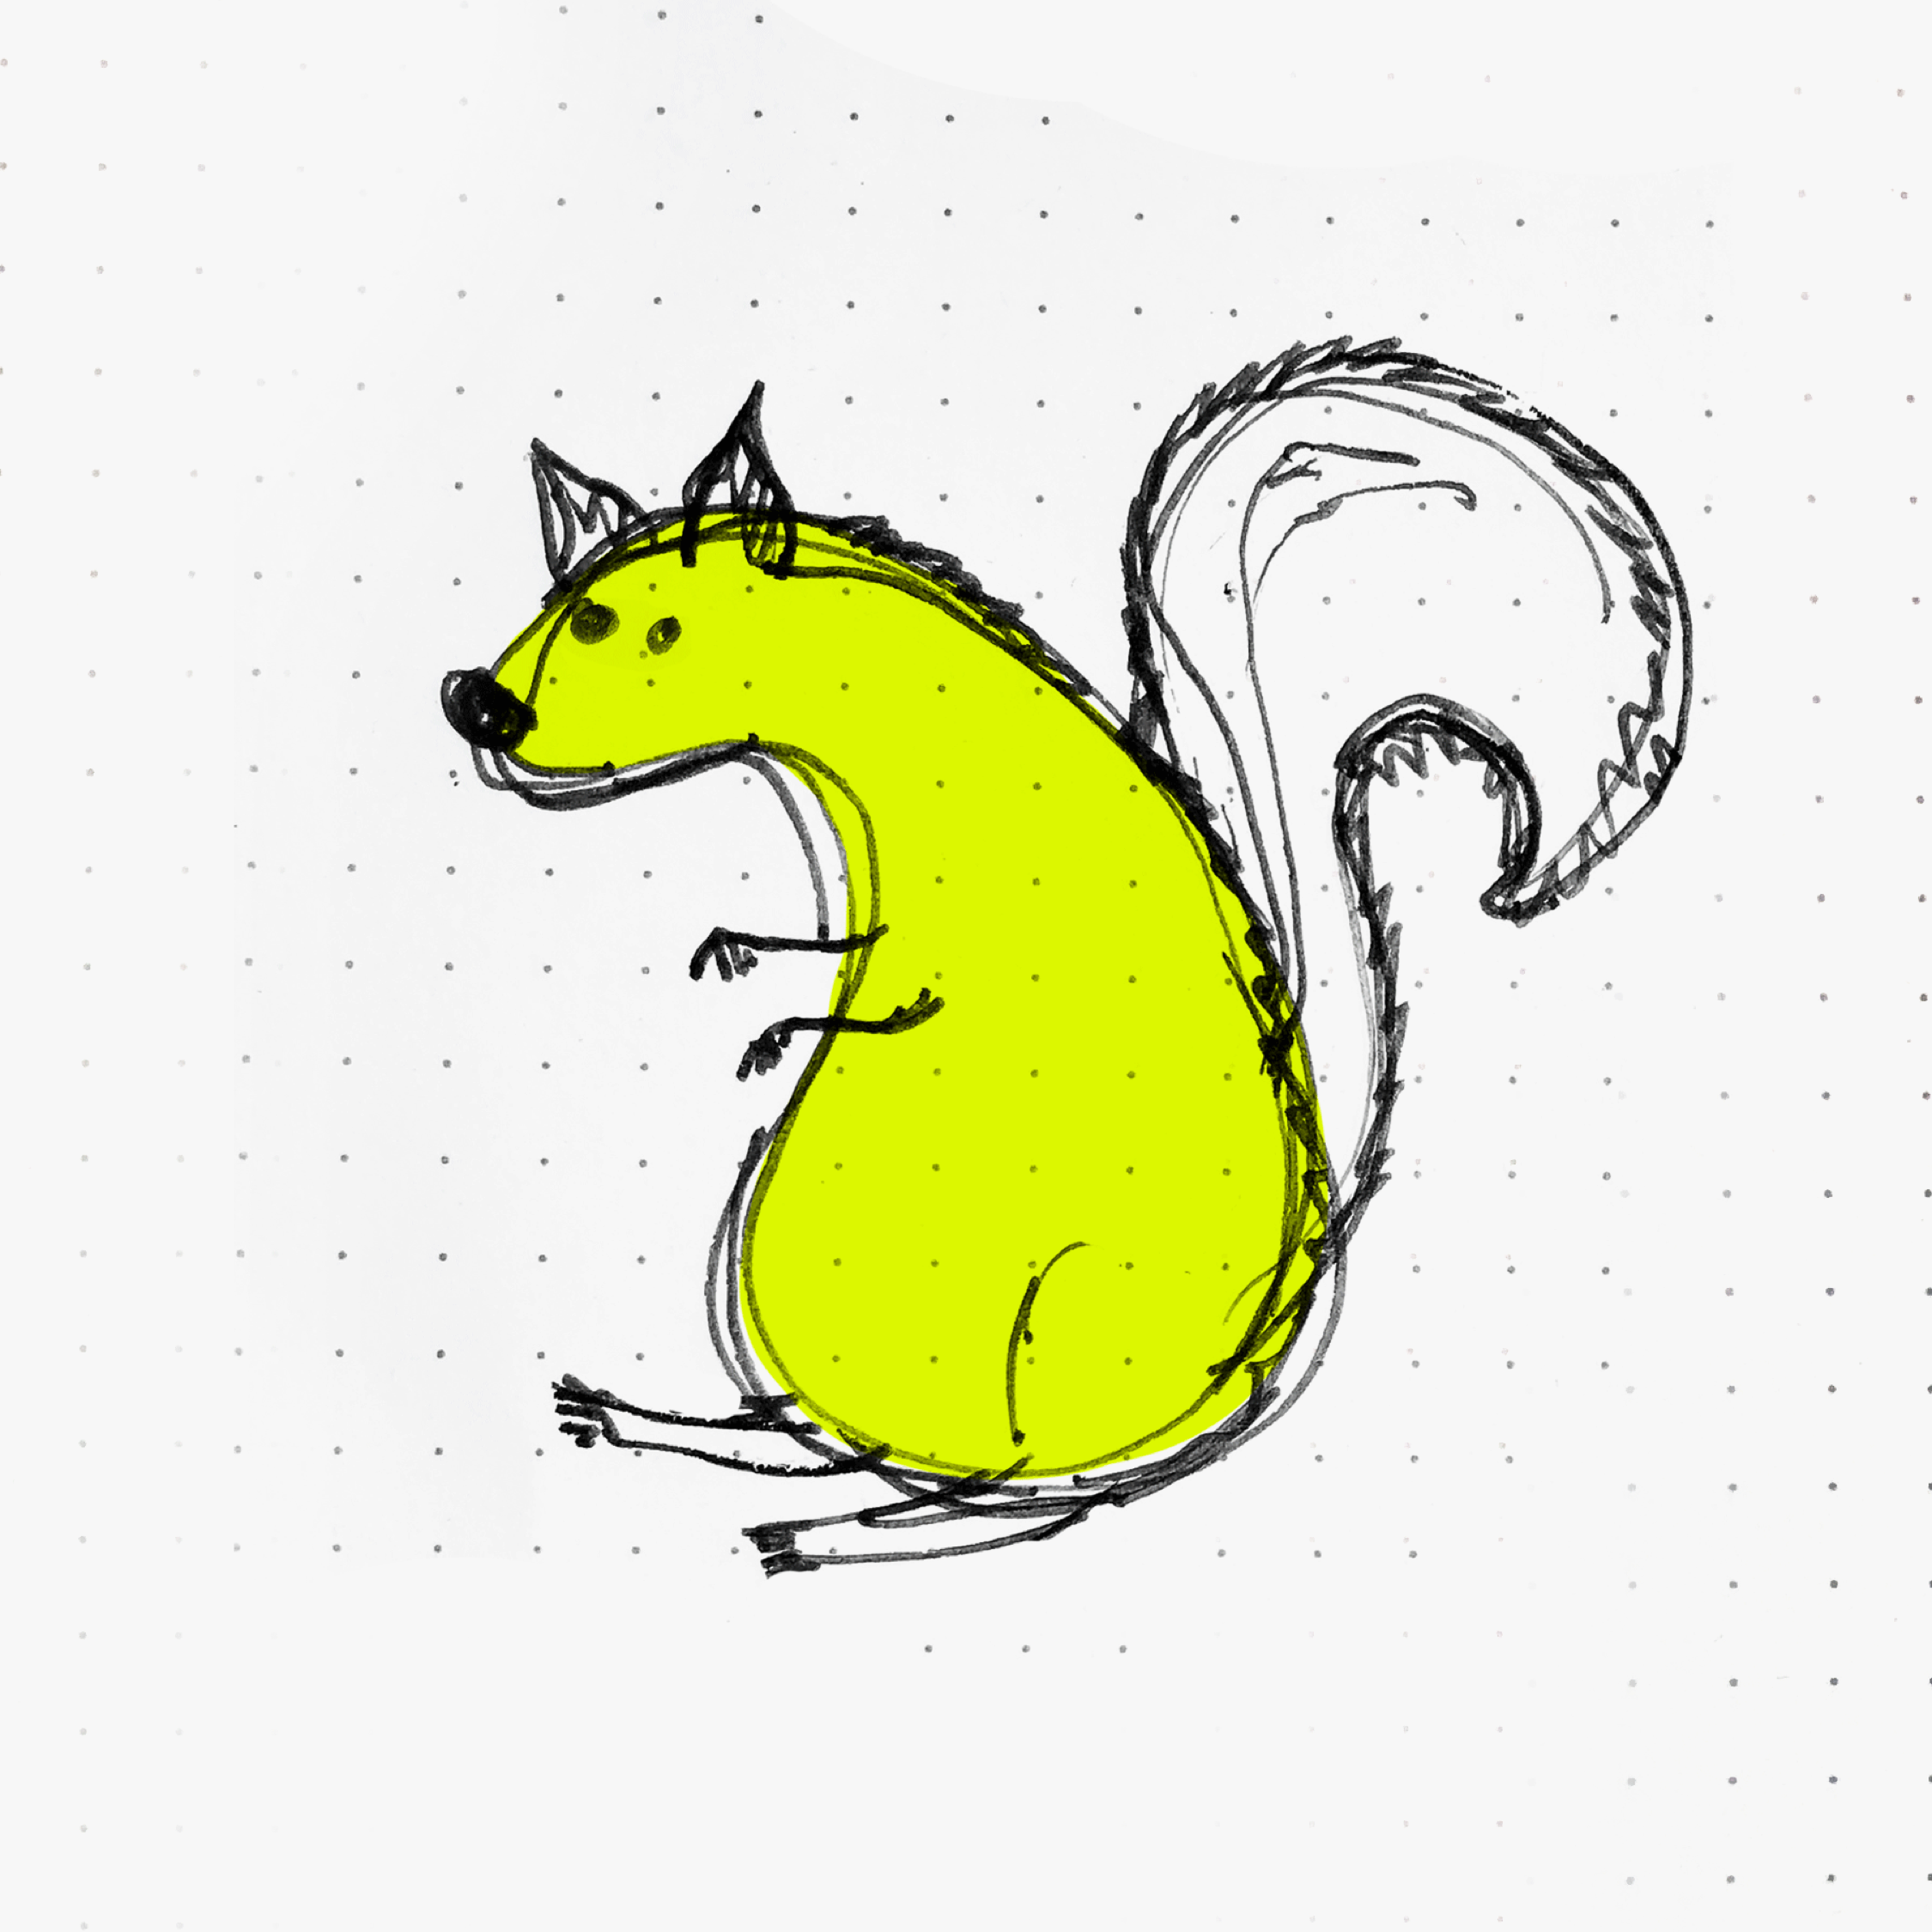 Critter of NYC #2 Ms. Squirrel